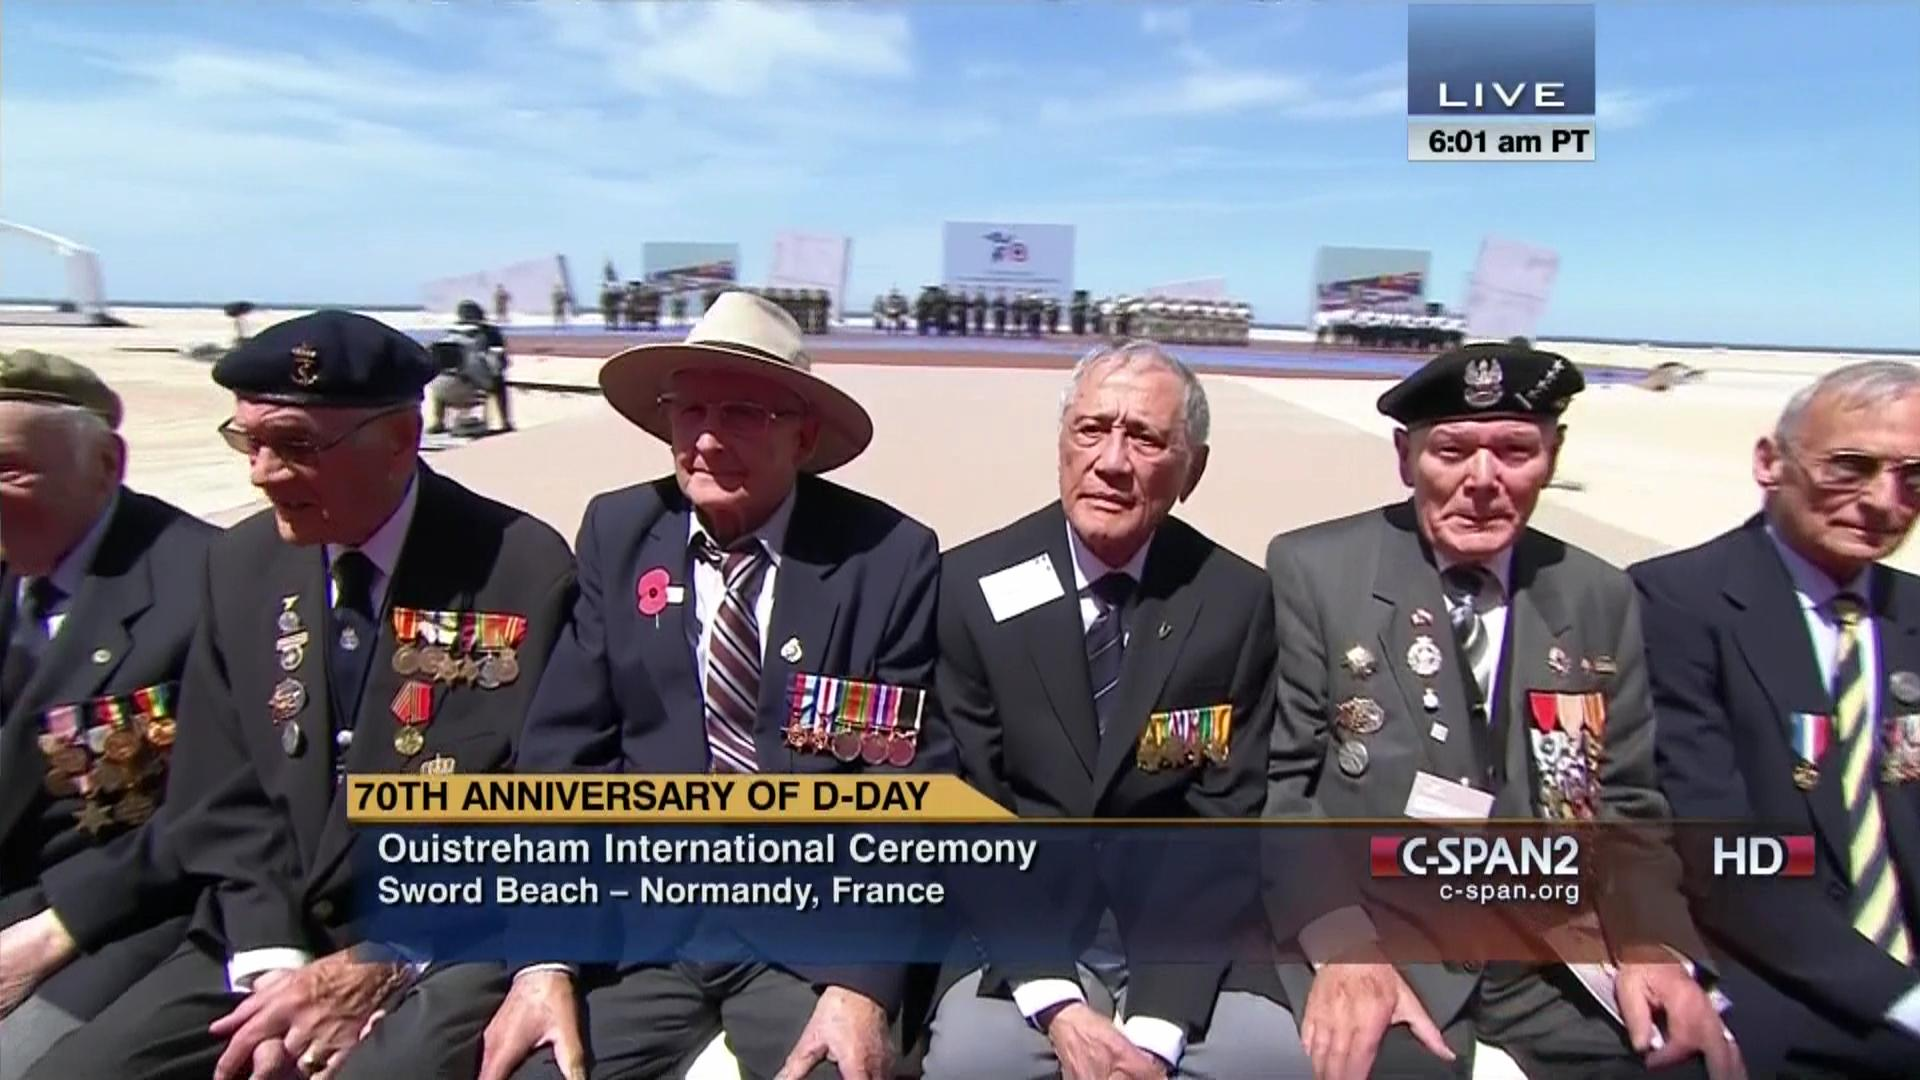 D Day 70th Anniversary Ouistreham International Ceremony